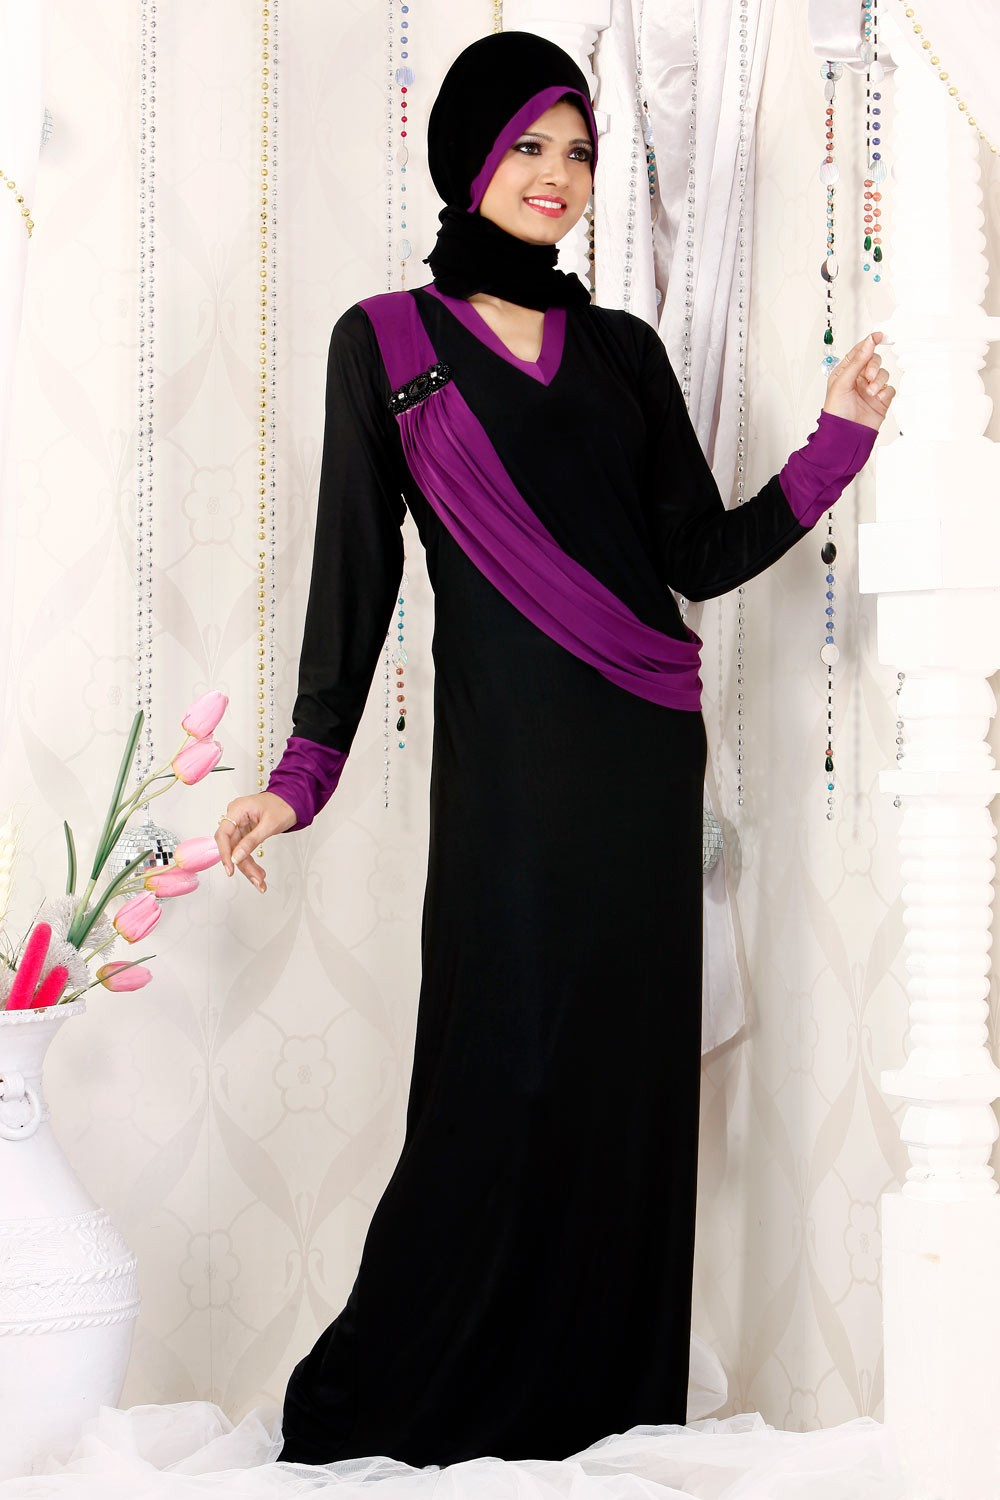 Elegant Modern Hijab Styles and Abaya Fashion 2017 for Girls - Stylish Clothes for Women